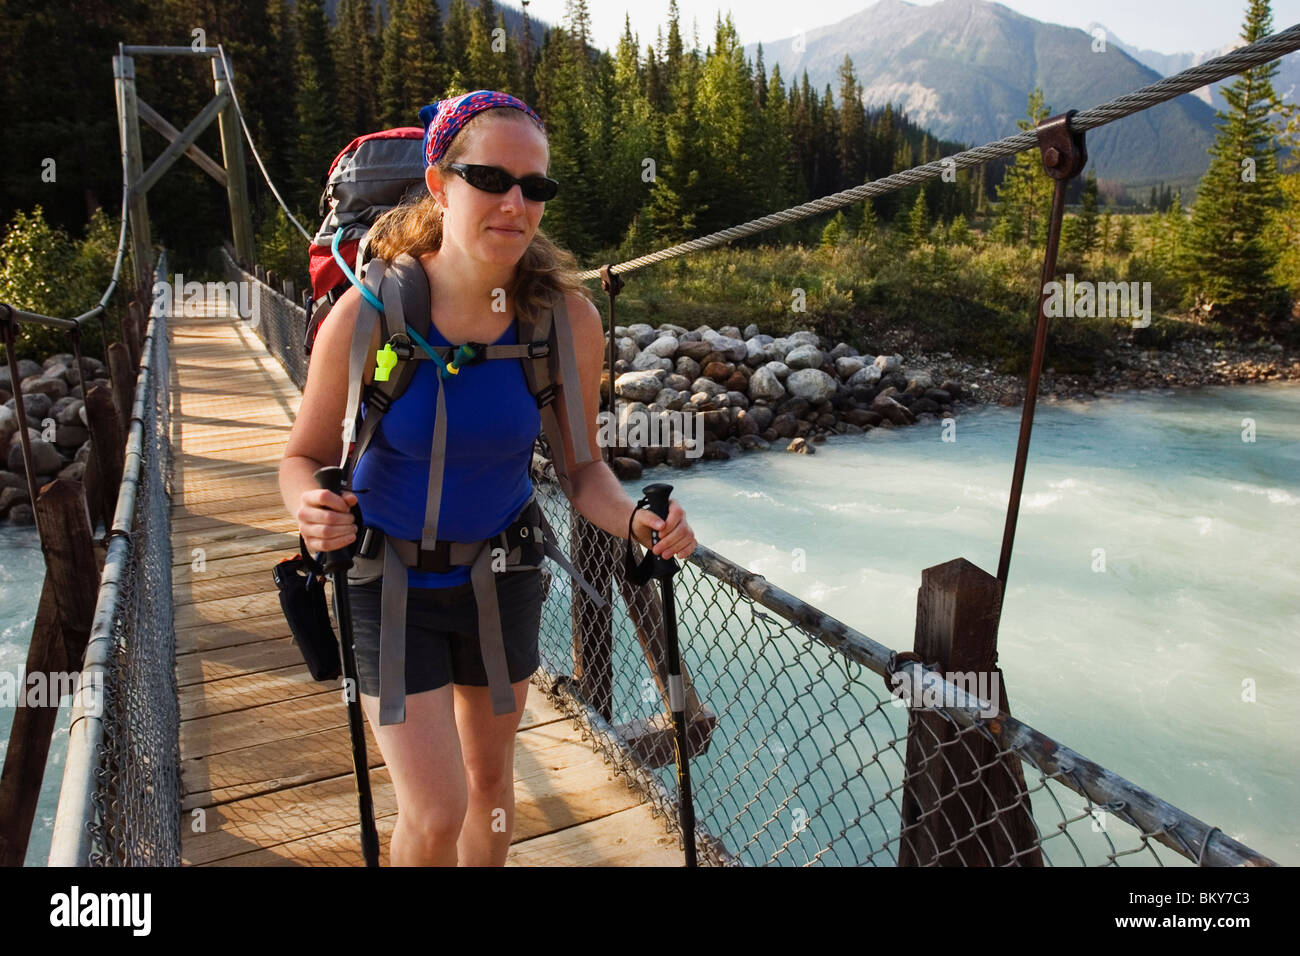 A female backpacker in her early thirties crosses a suspension bridge over the Vermillion River while hiking the - Stock Image